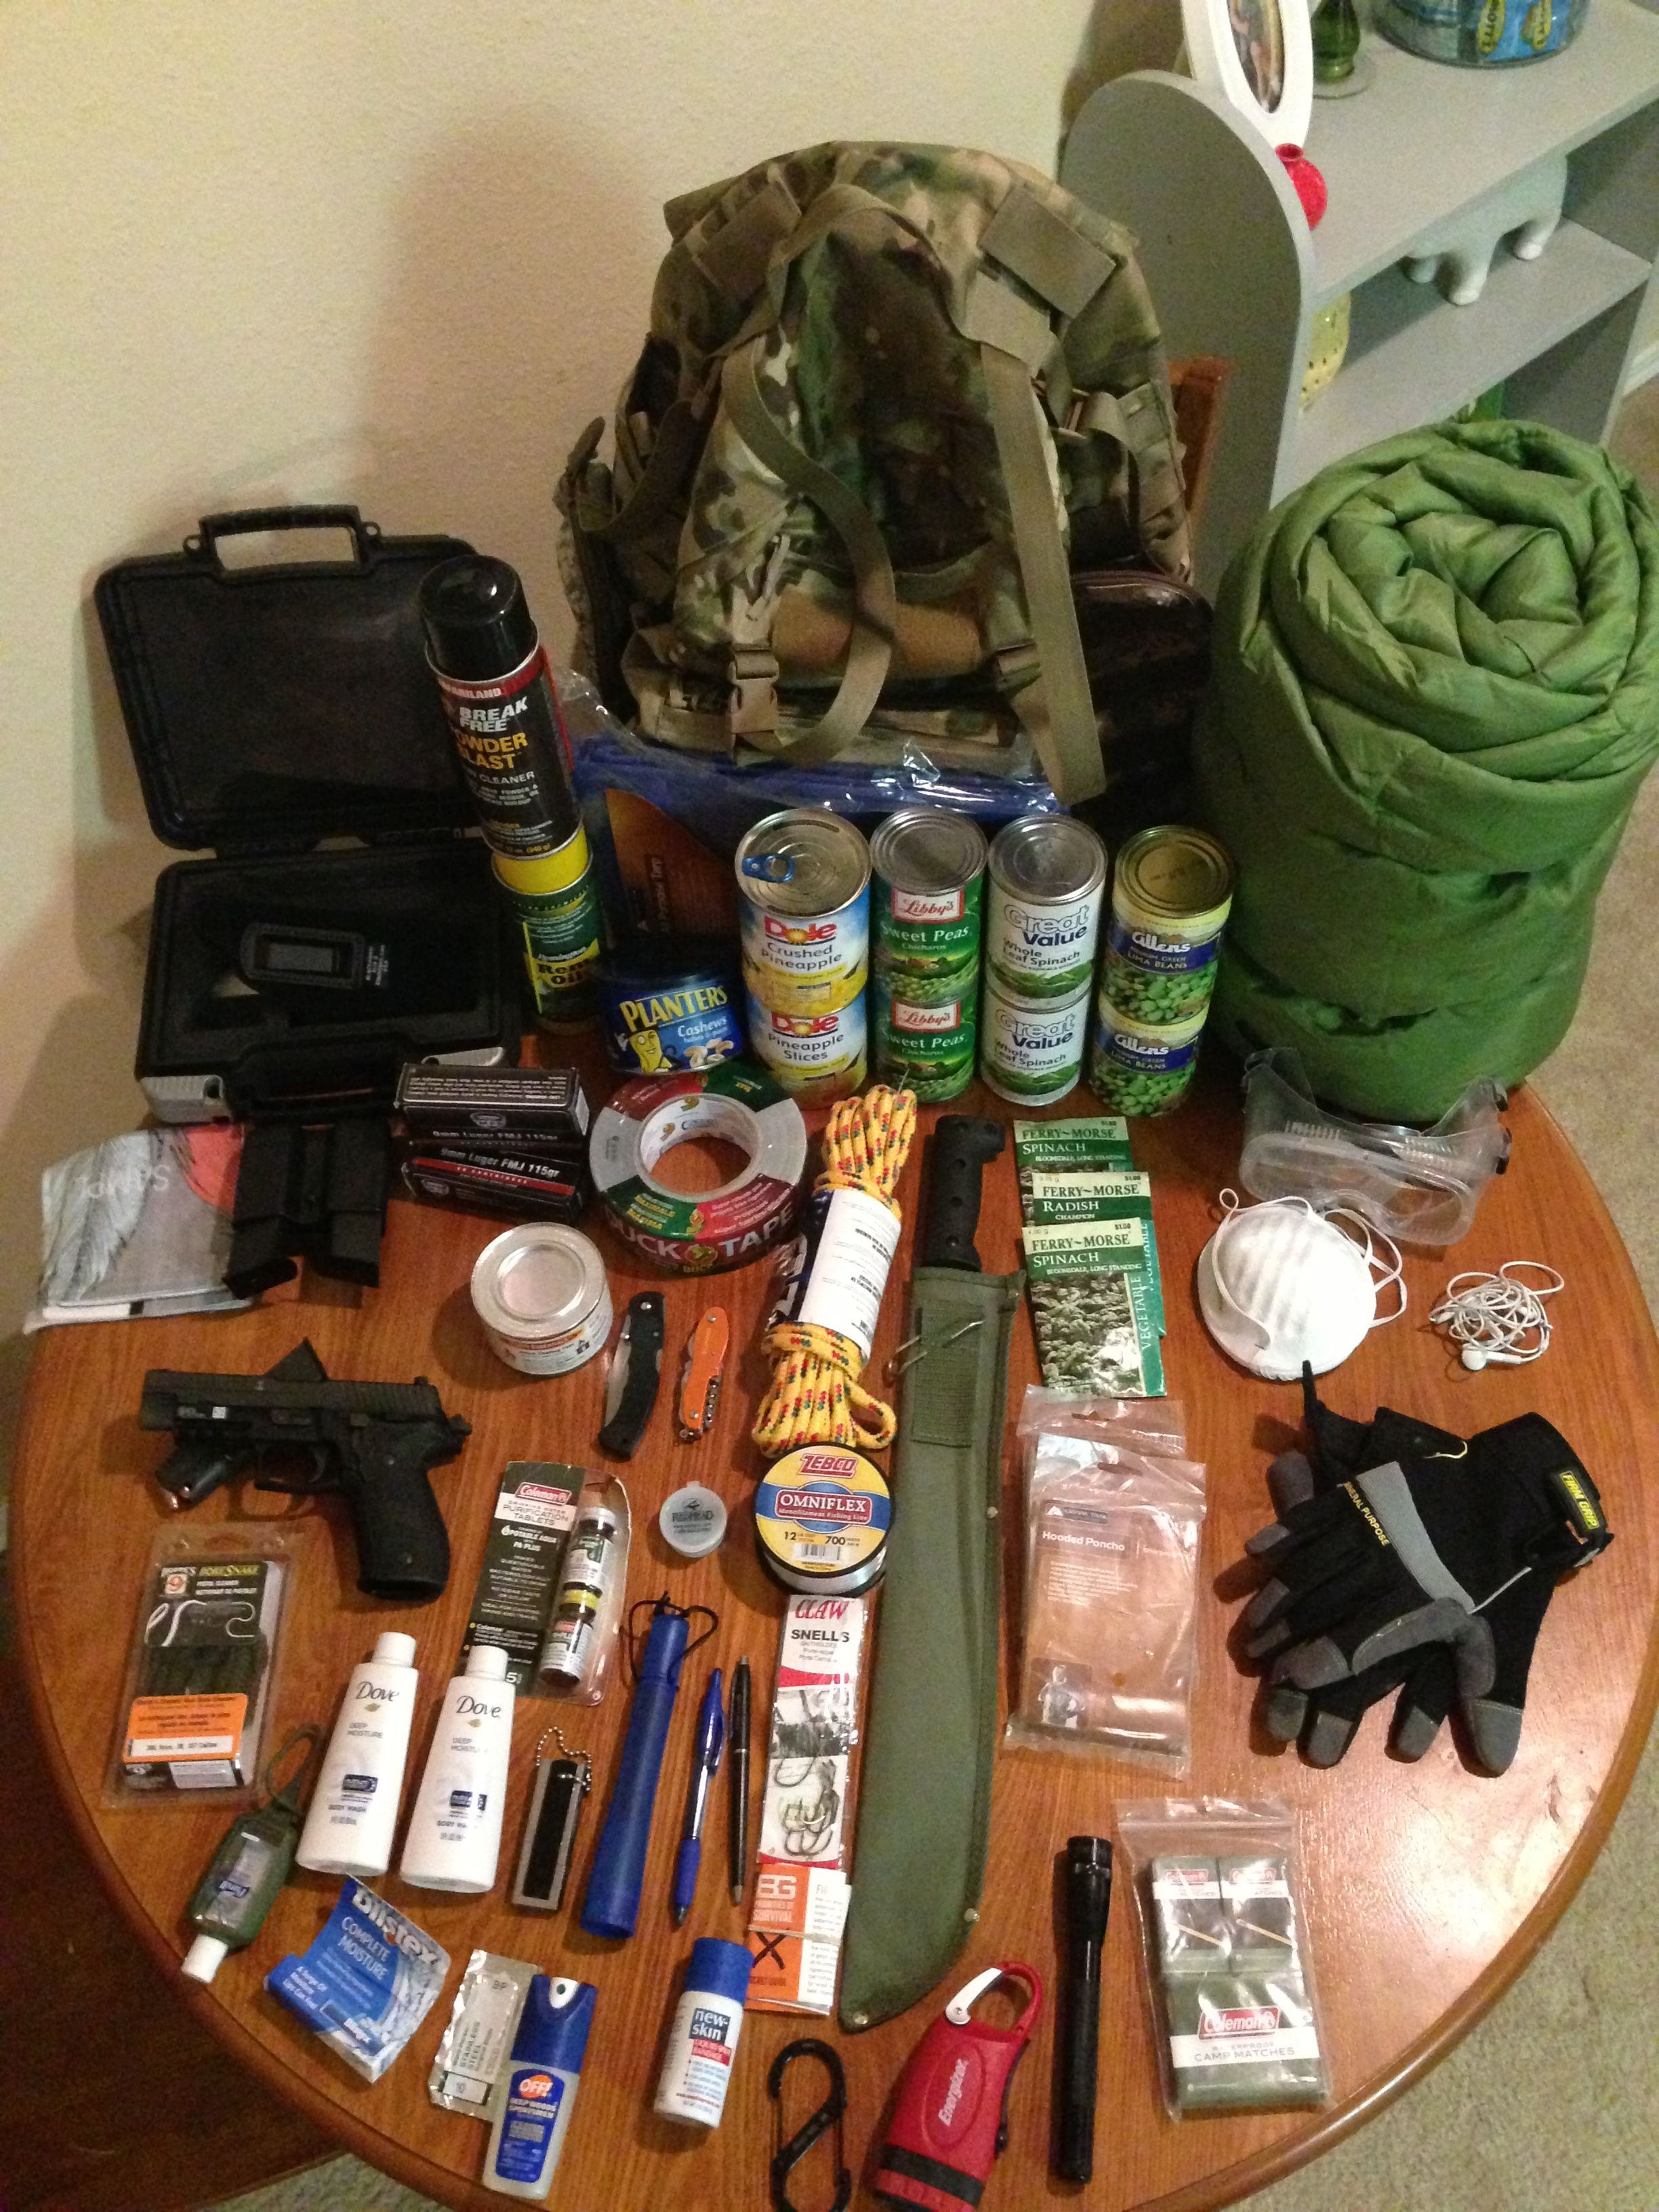 My Current Bug Out Bag Contents Bug Out Bag Contents 1 Roll Of Max Strength Duct Tape 1 Rope Of 3 8 X25 Braid Bug Out Bag Bug Out Bag Contents Bug Out Kit